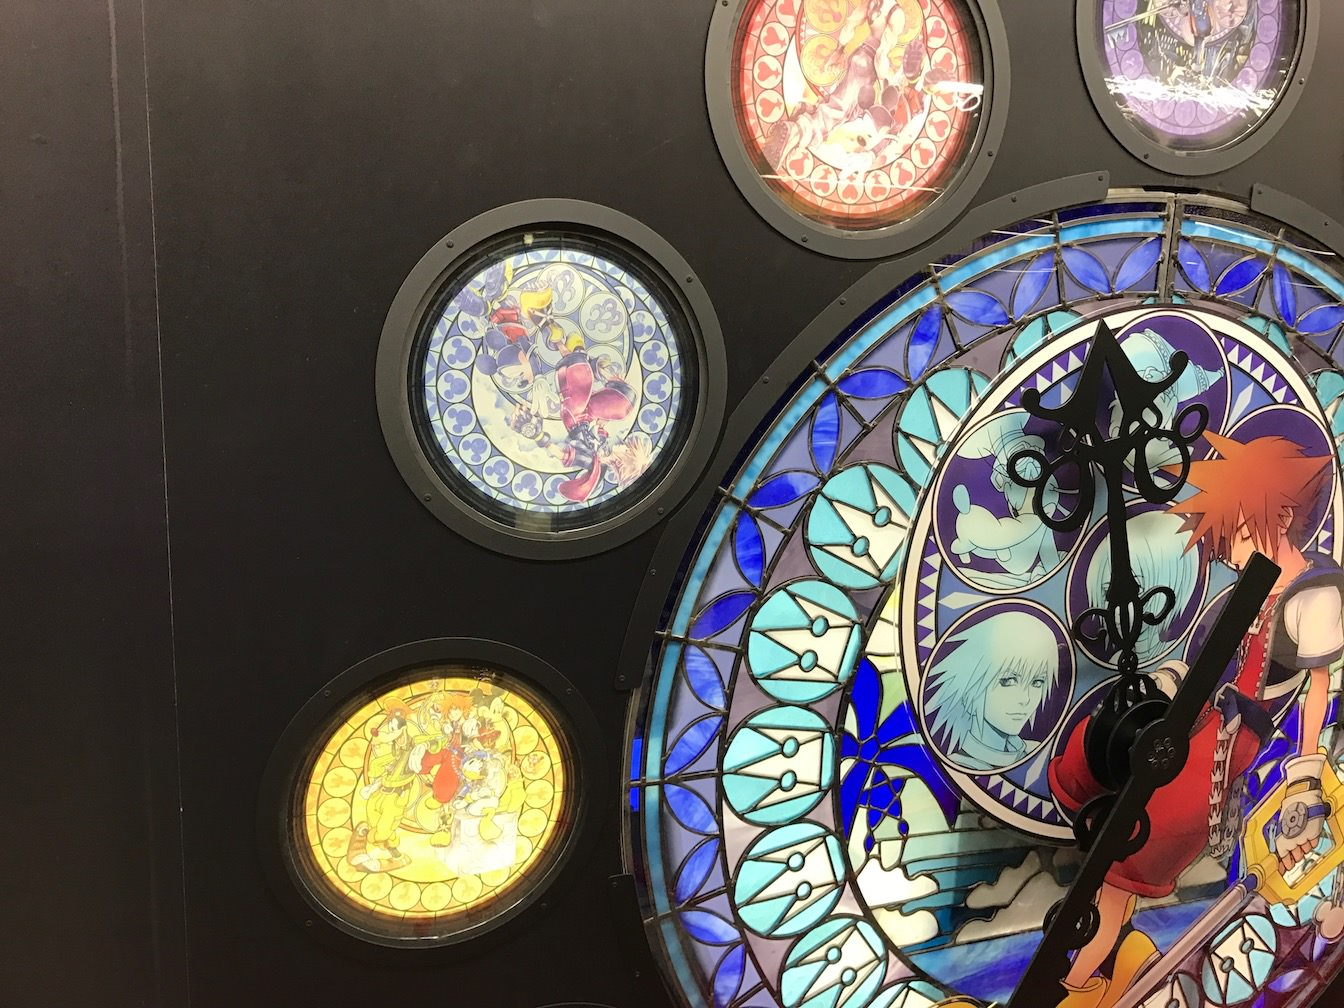 Kingdomhearts 15th anniversary exhibition at shinjuku 7